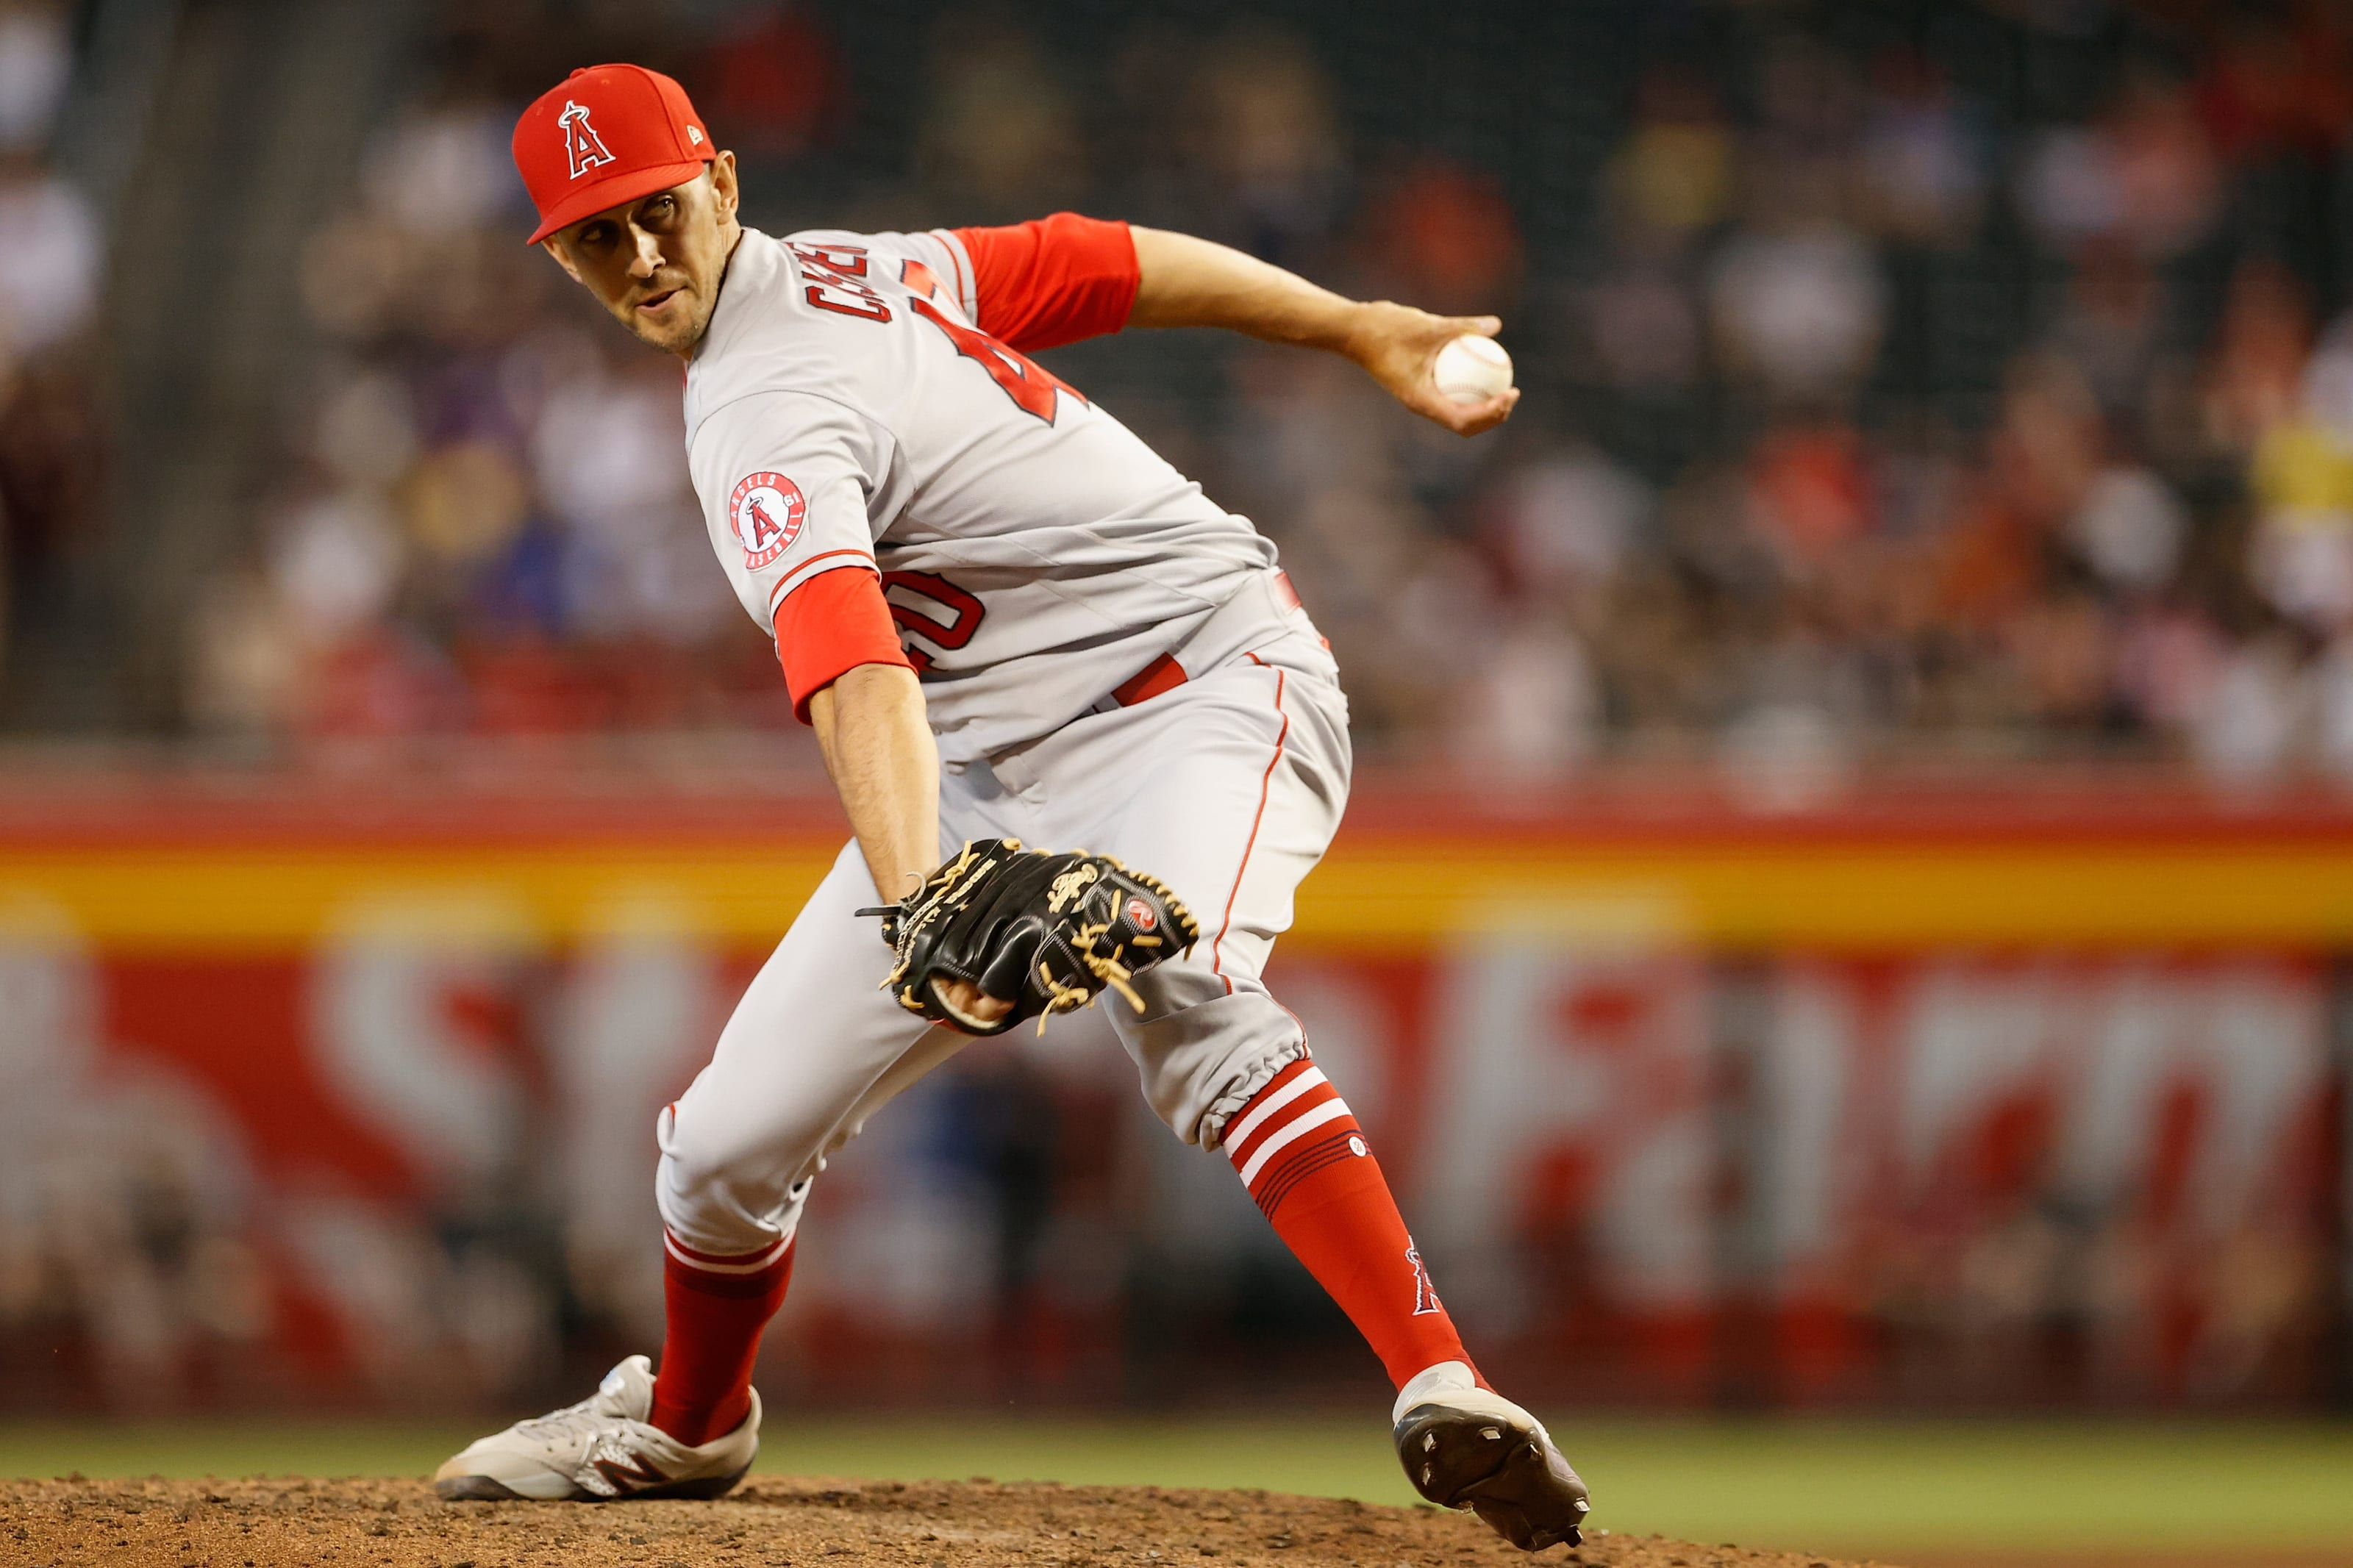 Relief pitcher Steve Cishek #40 of the Los Angeles Angels pitches. Could the Reds make a trade for Cishek?